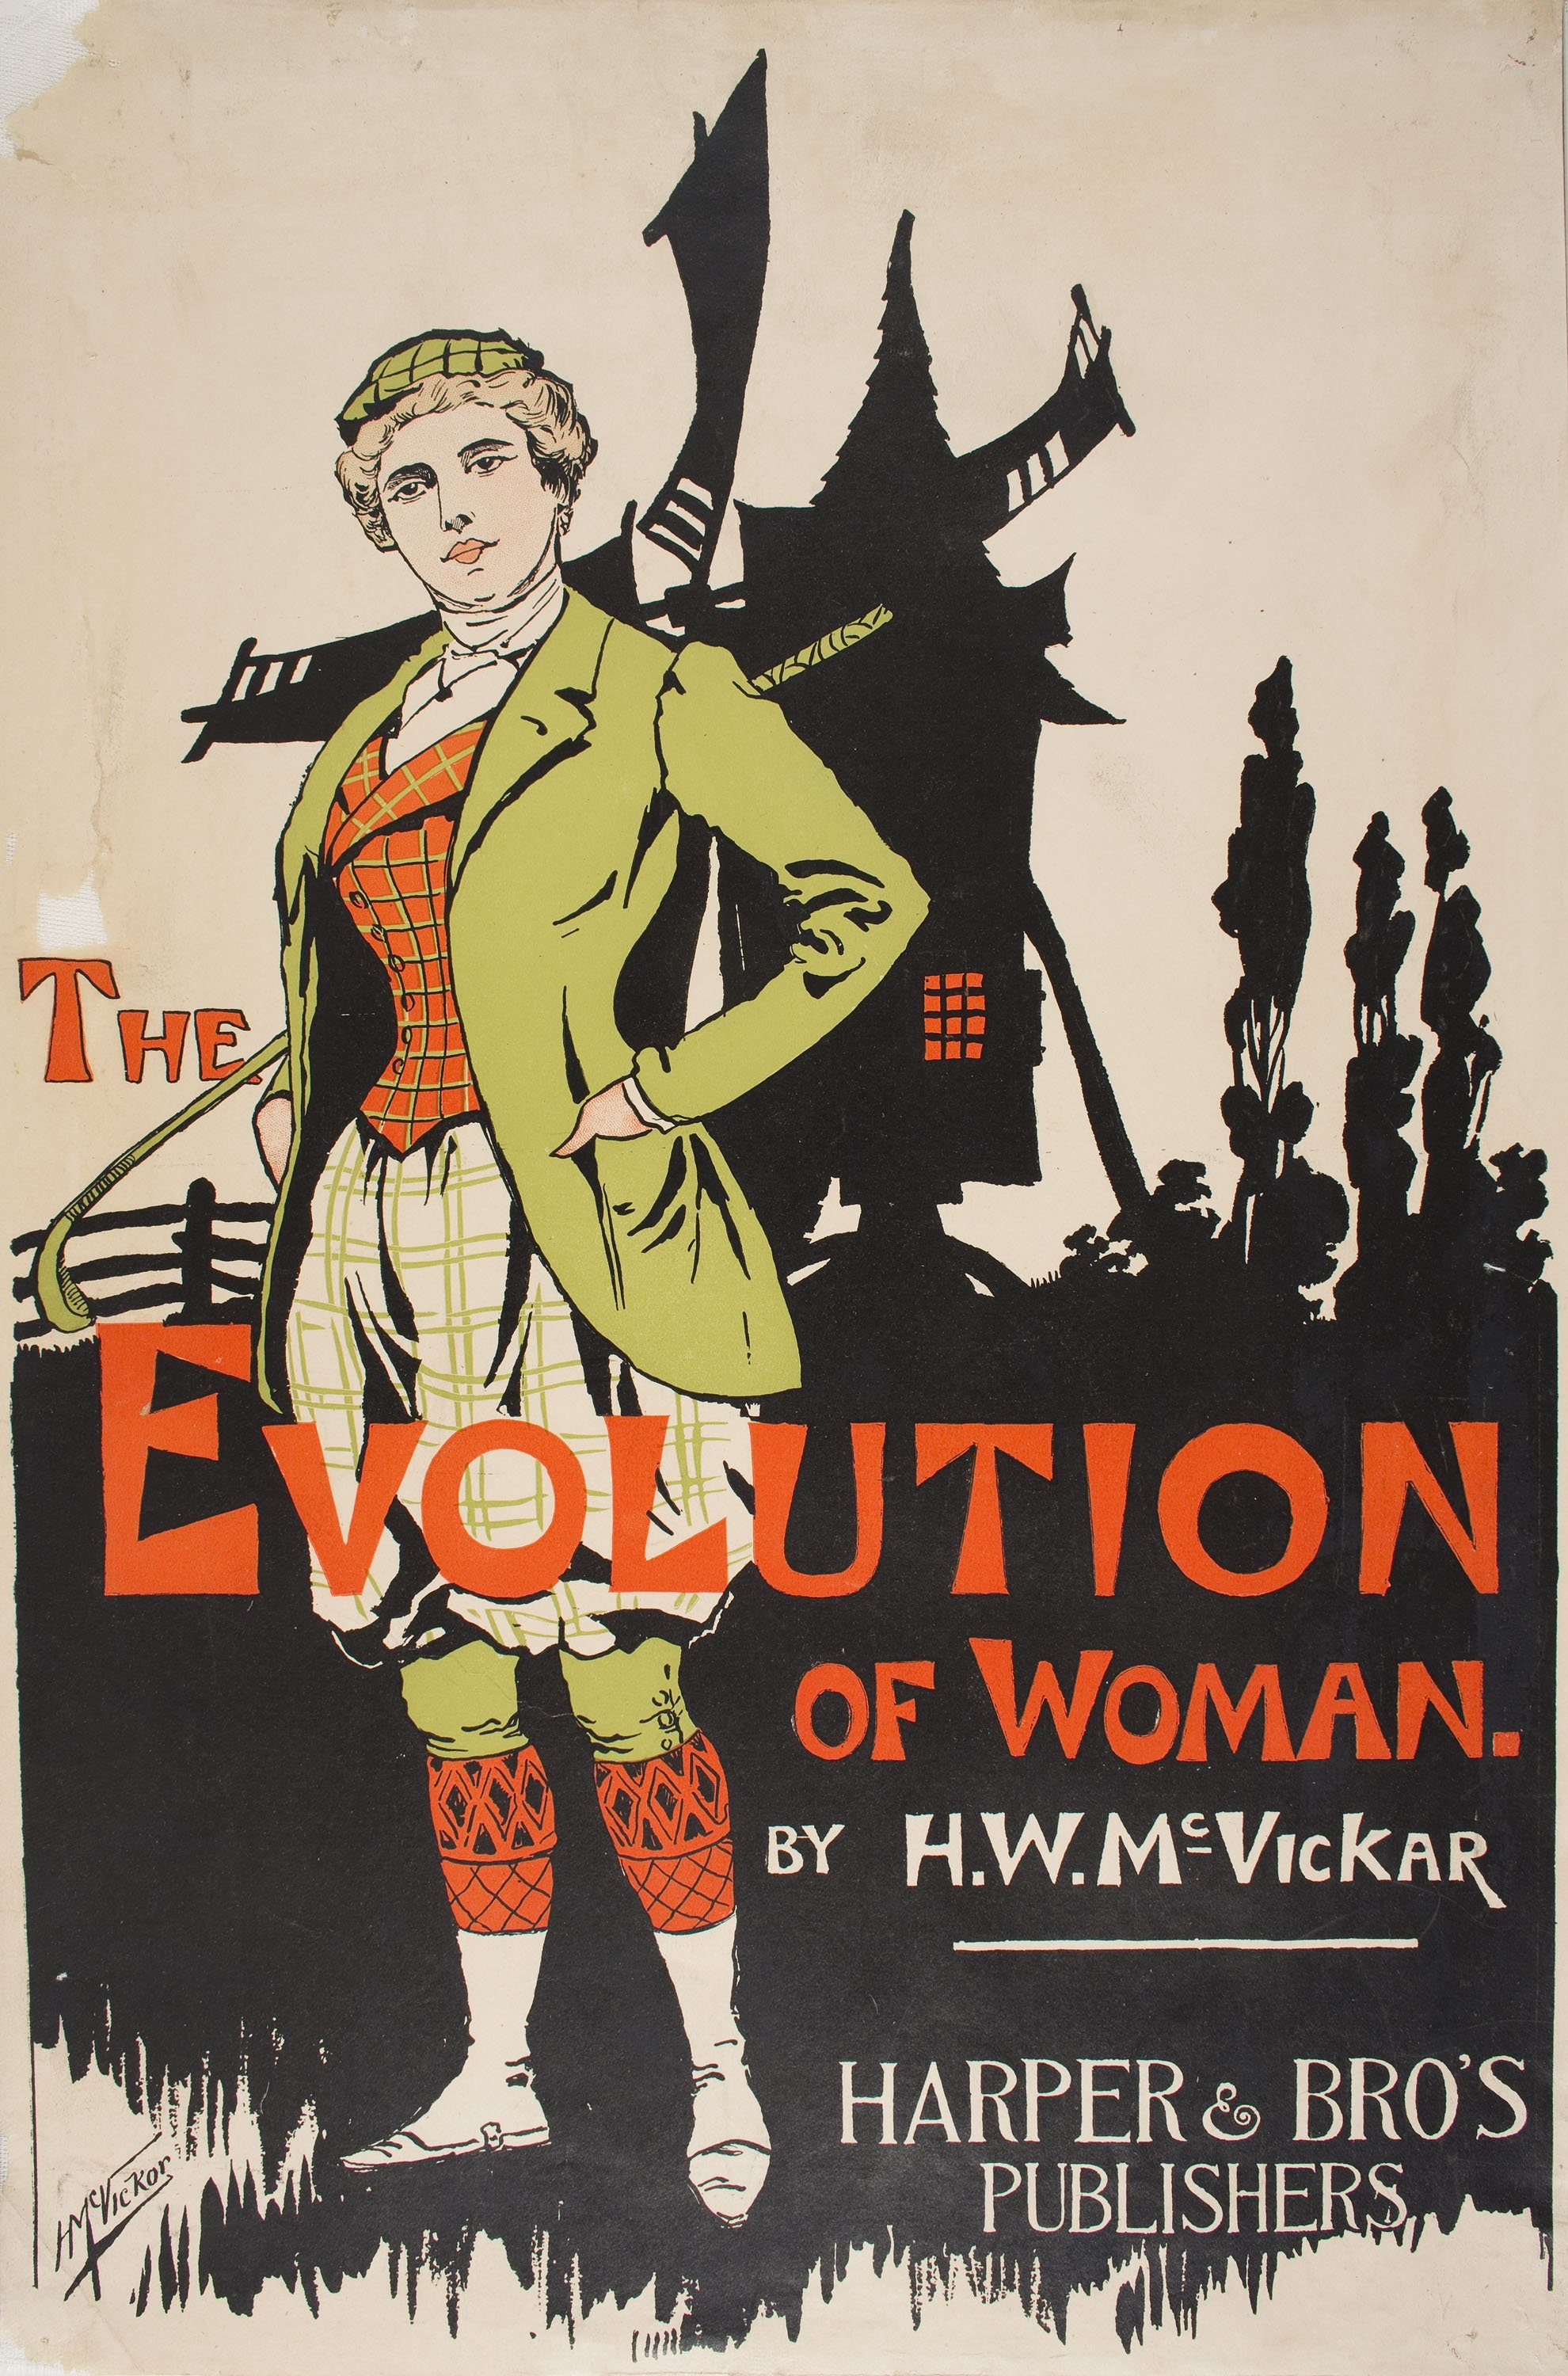 The Evolution of Woman, Harry Whitney McVickar, 1903